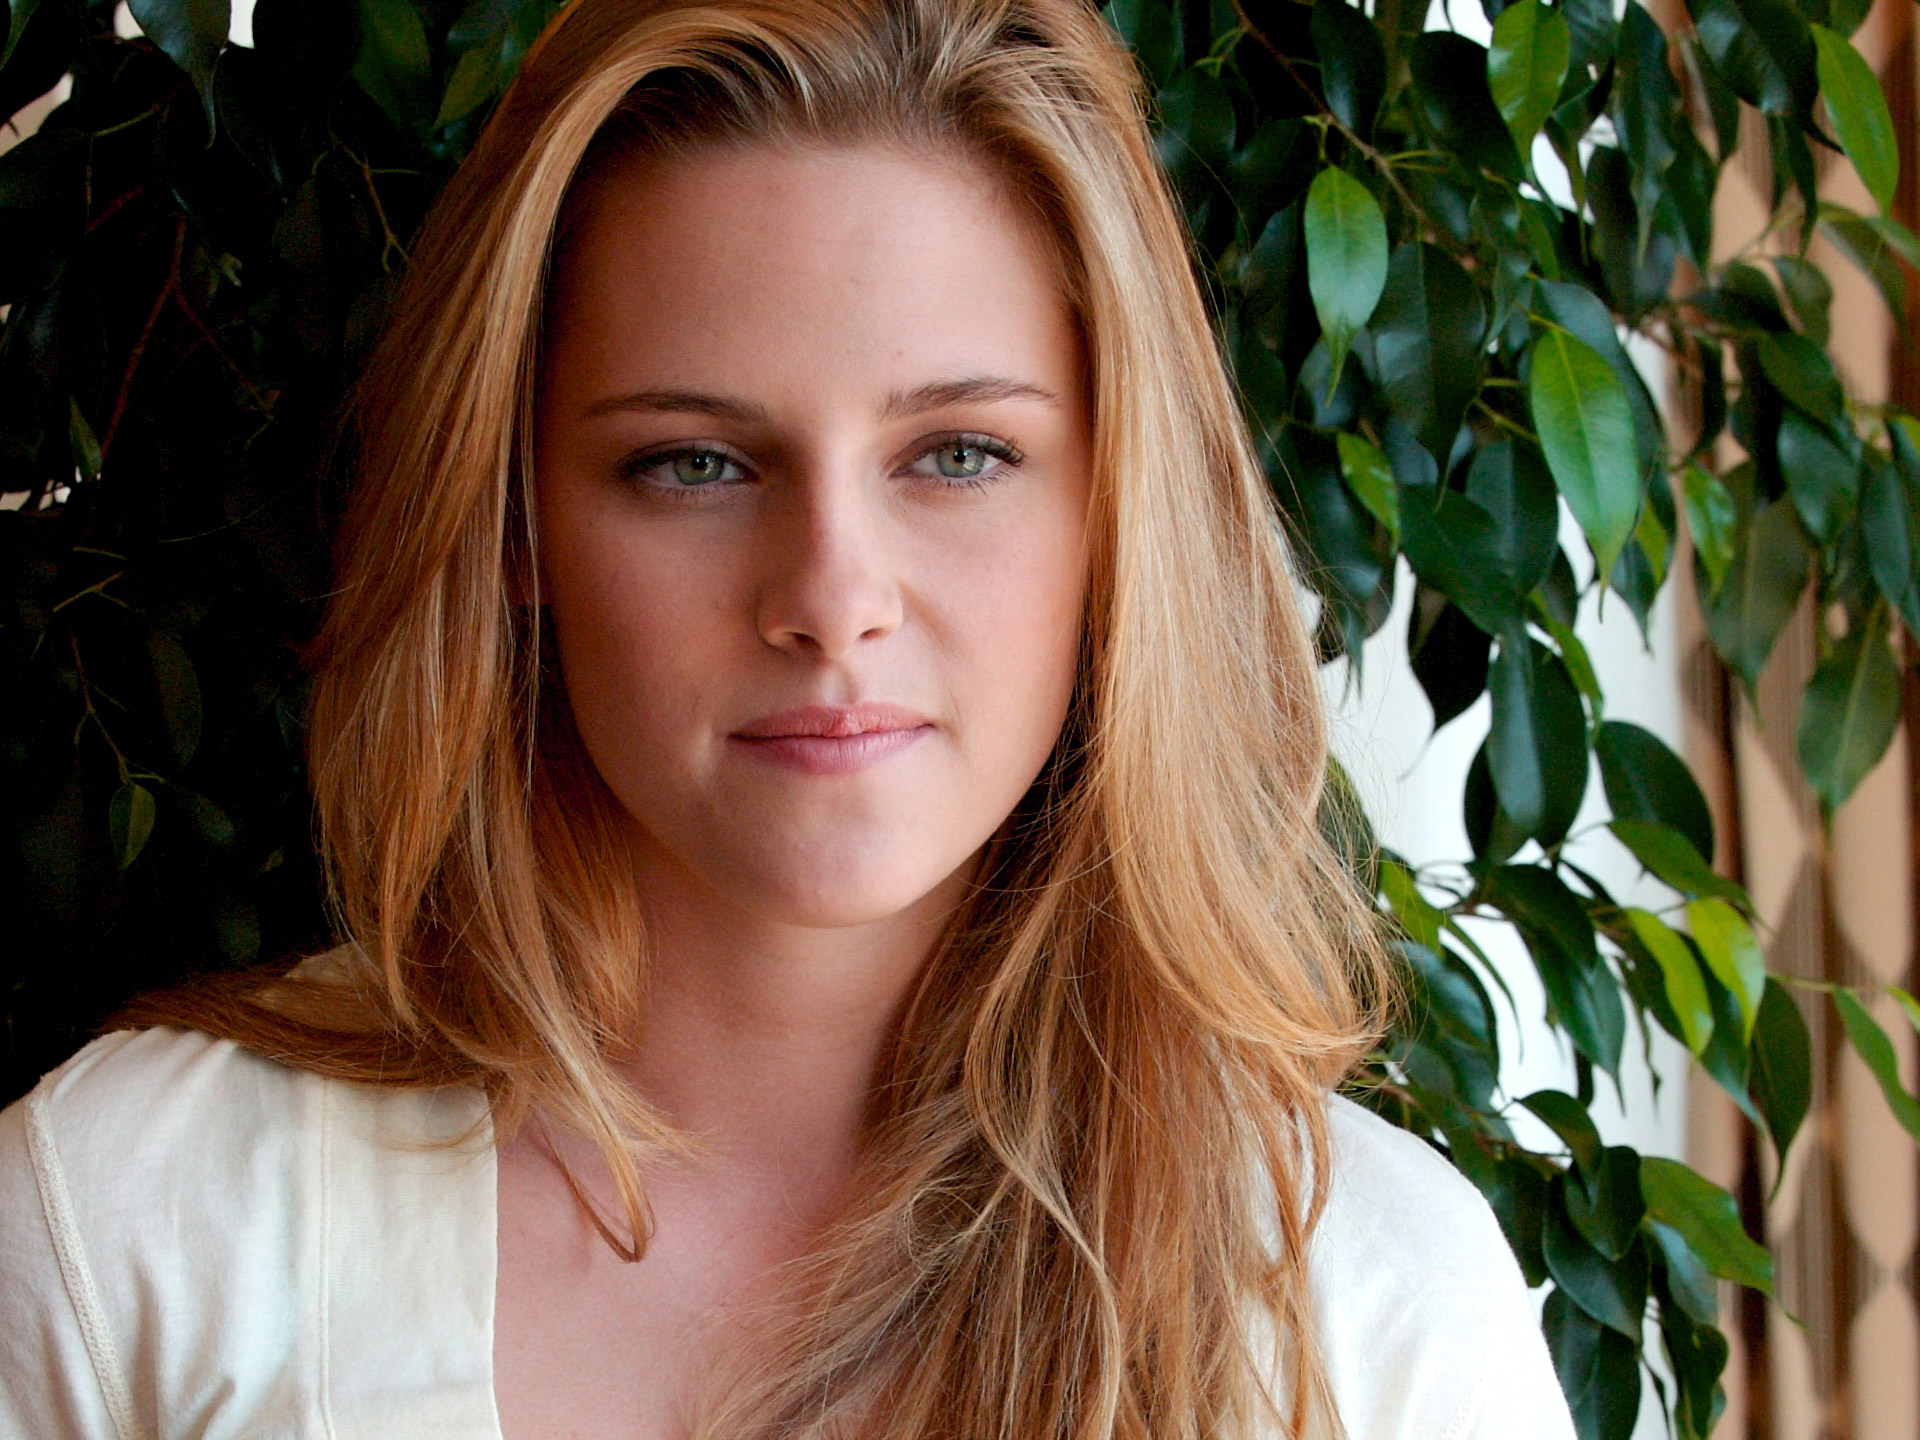 Hollywood Actresses Images Wallpaper Pictures Photo Free HD Download